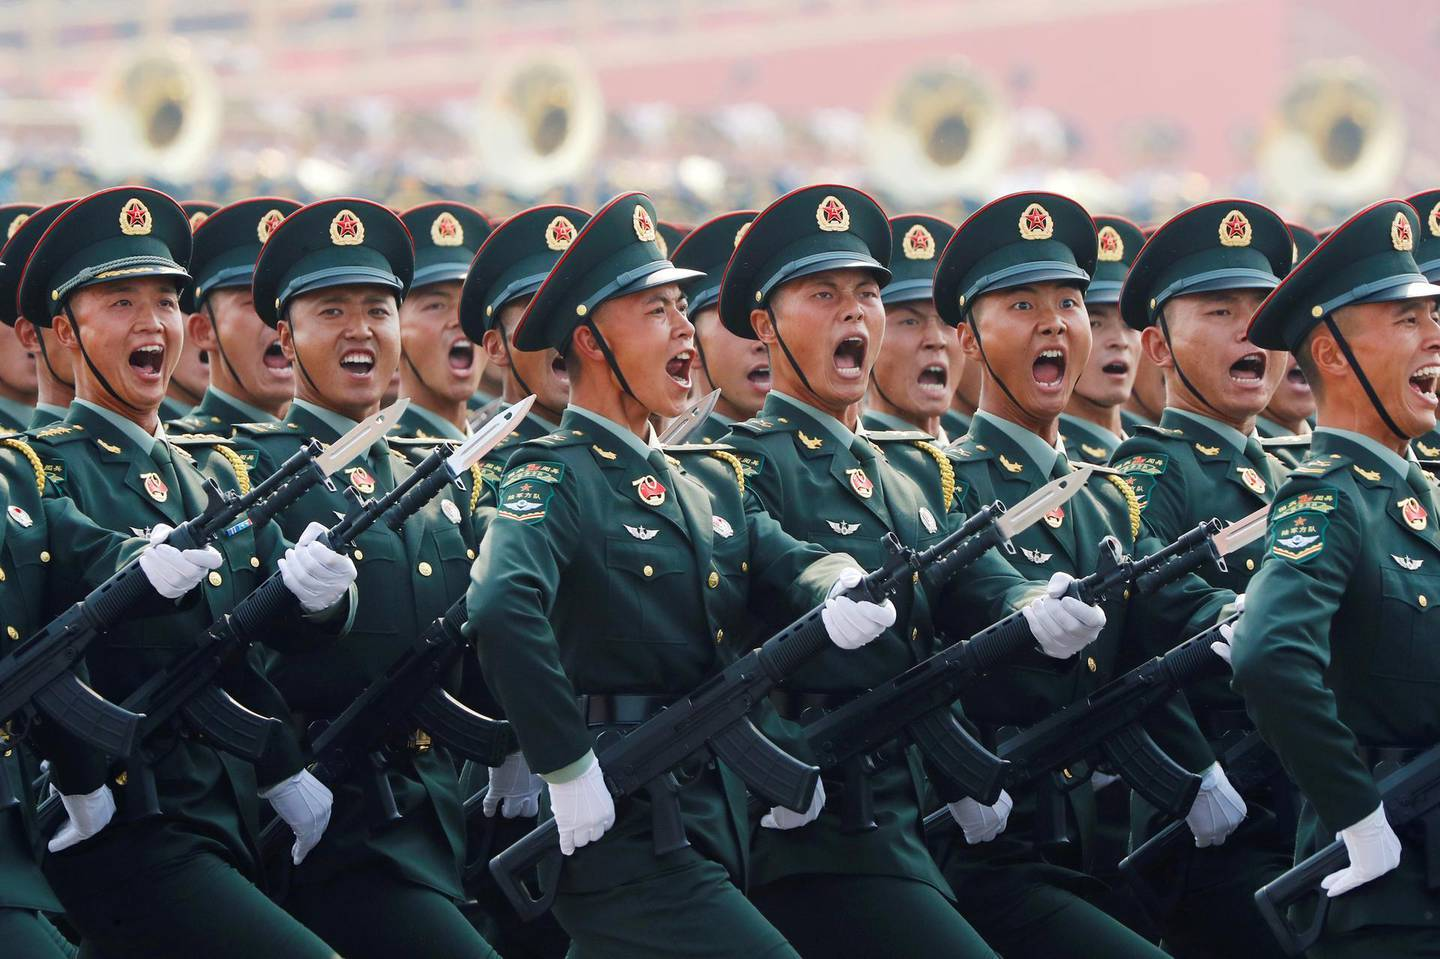 Soldiers of People's Liberation Army (PLA) march in formation during the military parade marking the 70th founding anniversary of People's Republic of China, on its National Day in Beijing, China October 1, 2019.  REUTERS/Thomas Peter